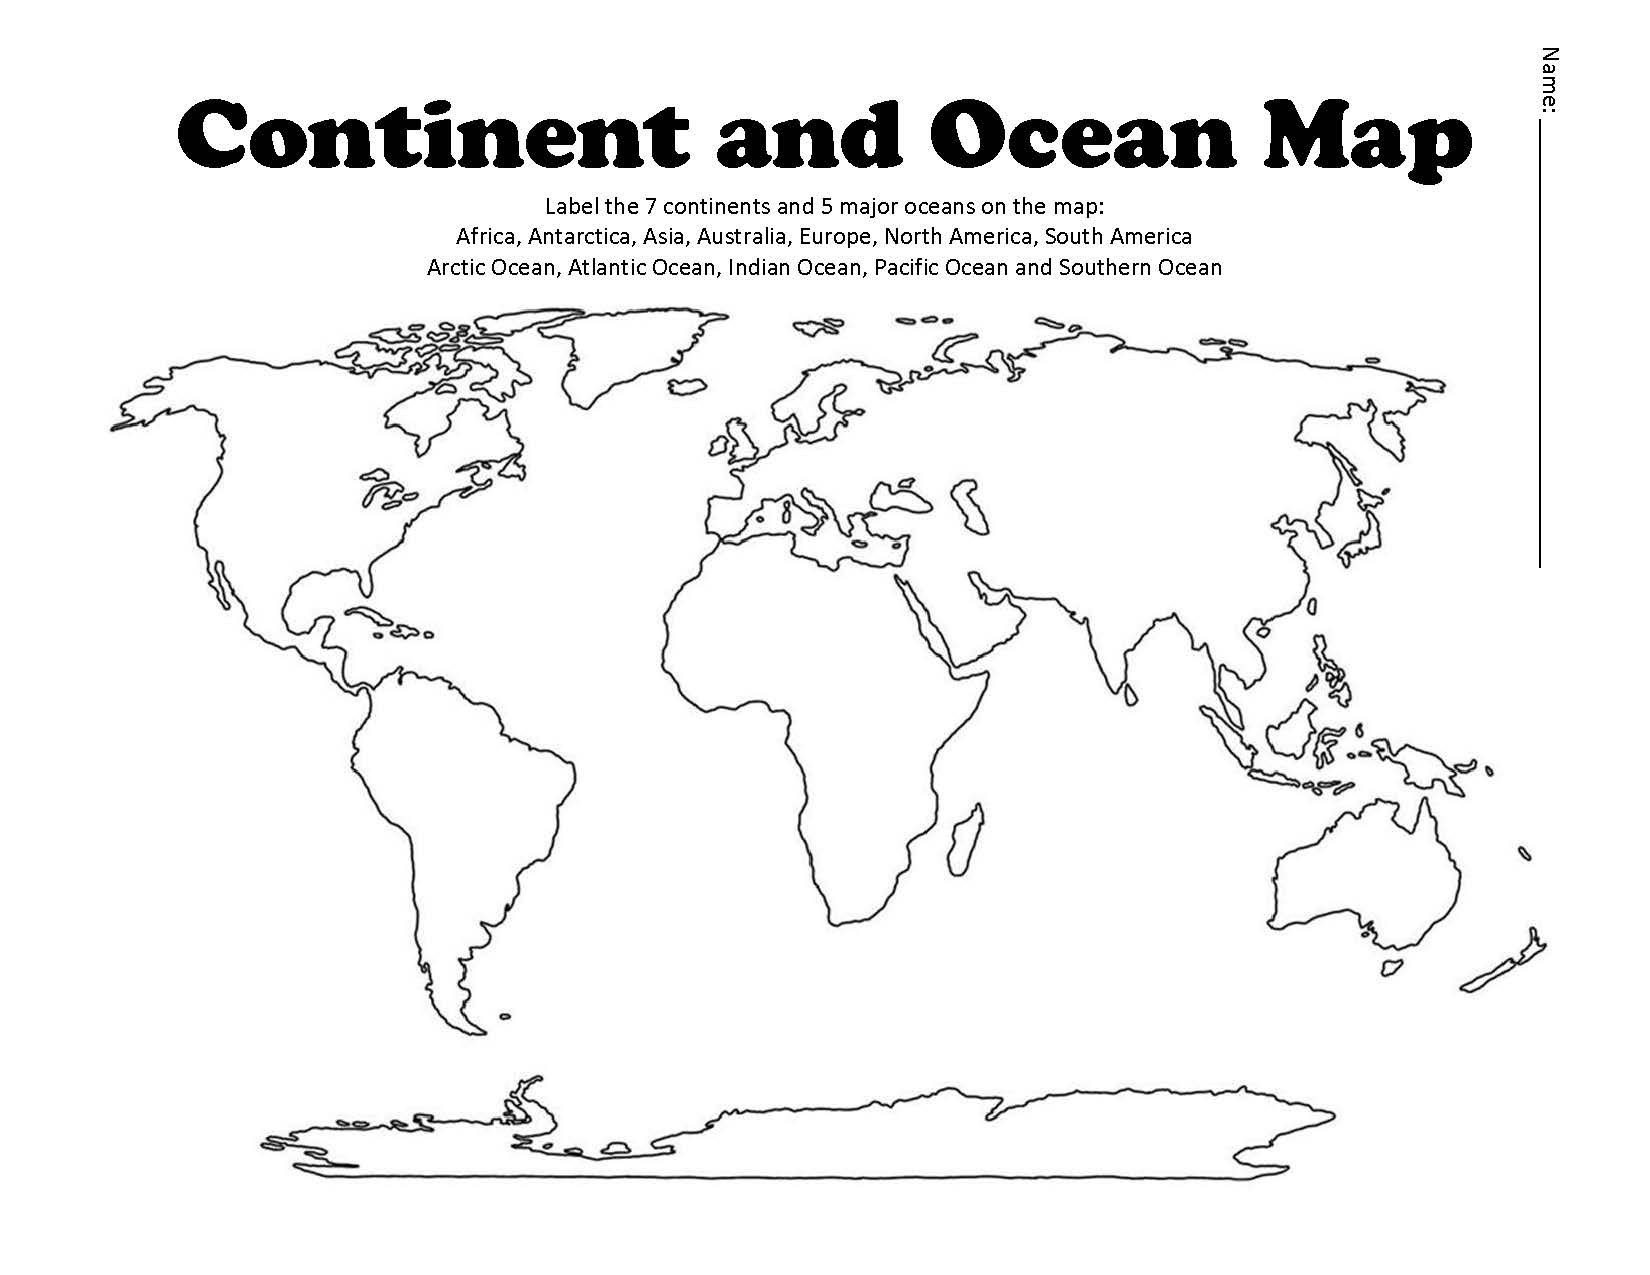 Label Continents and Oceans Printable Continent and Ocean Map Worksheet Blank